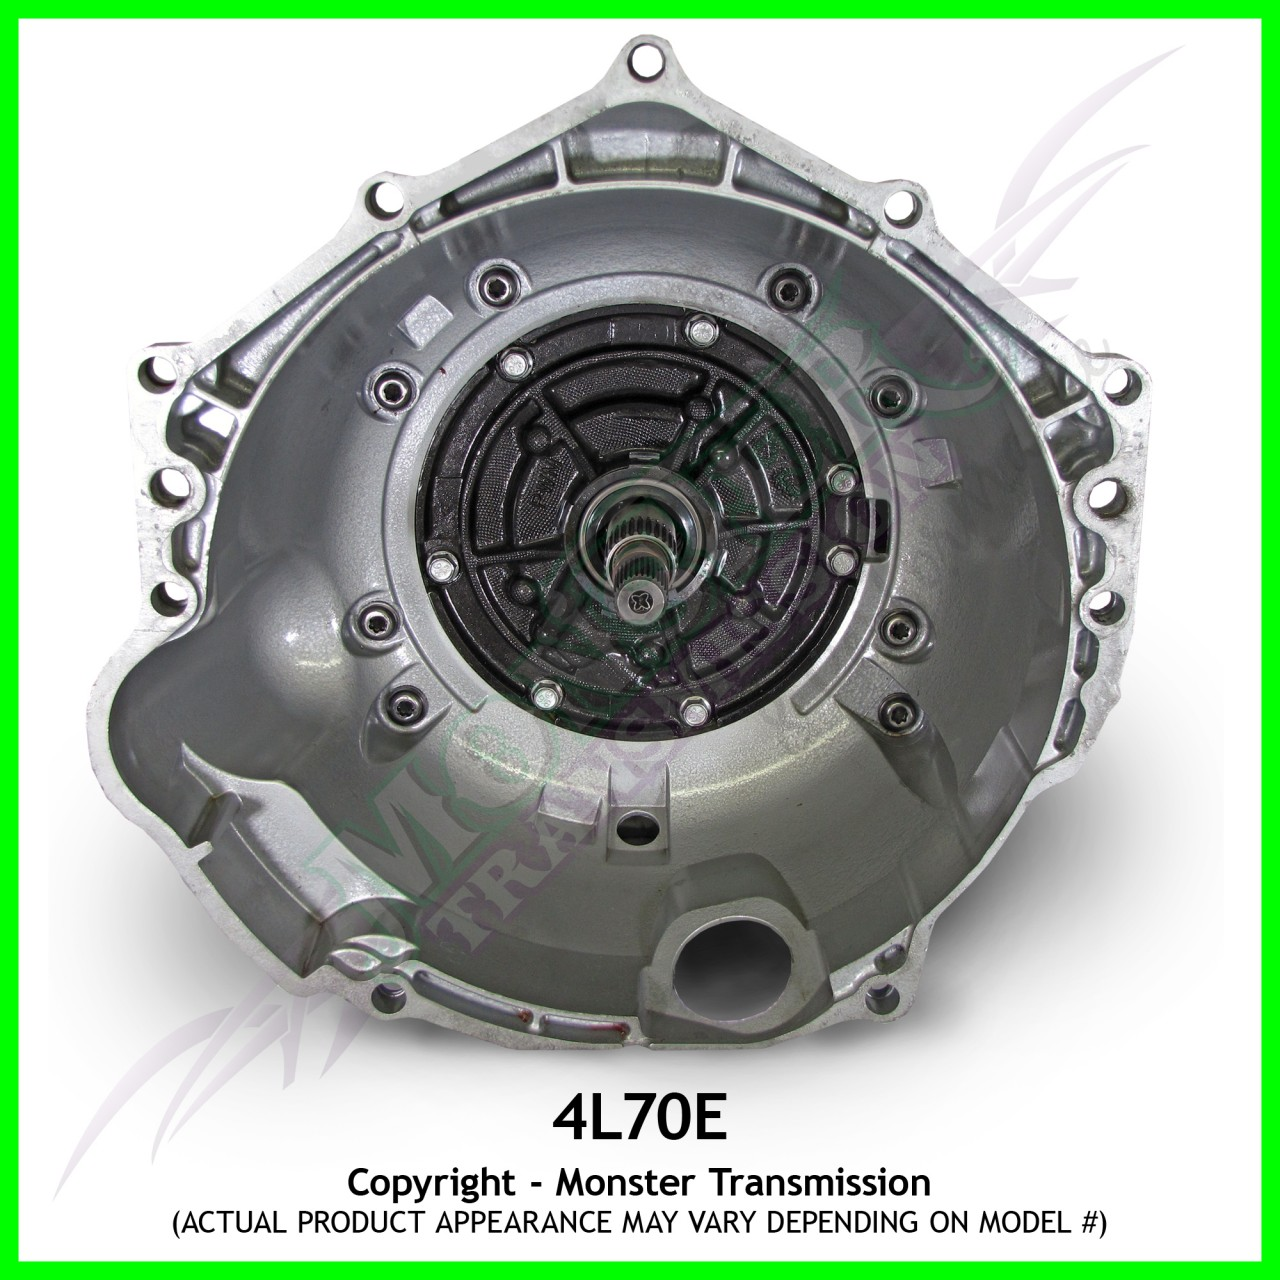 4L70E Transmission Remanufactured Heavy Duty 4.8 5.3 LS1 6